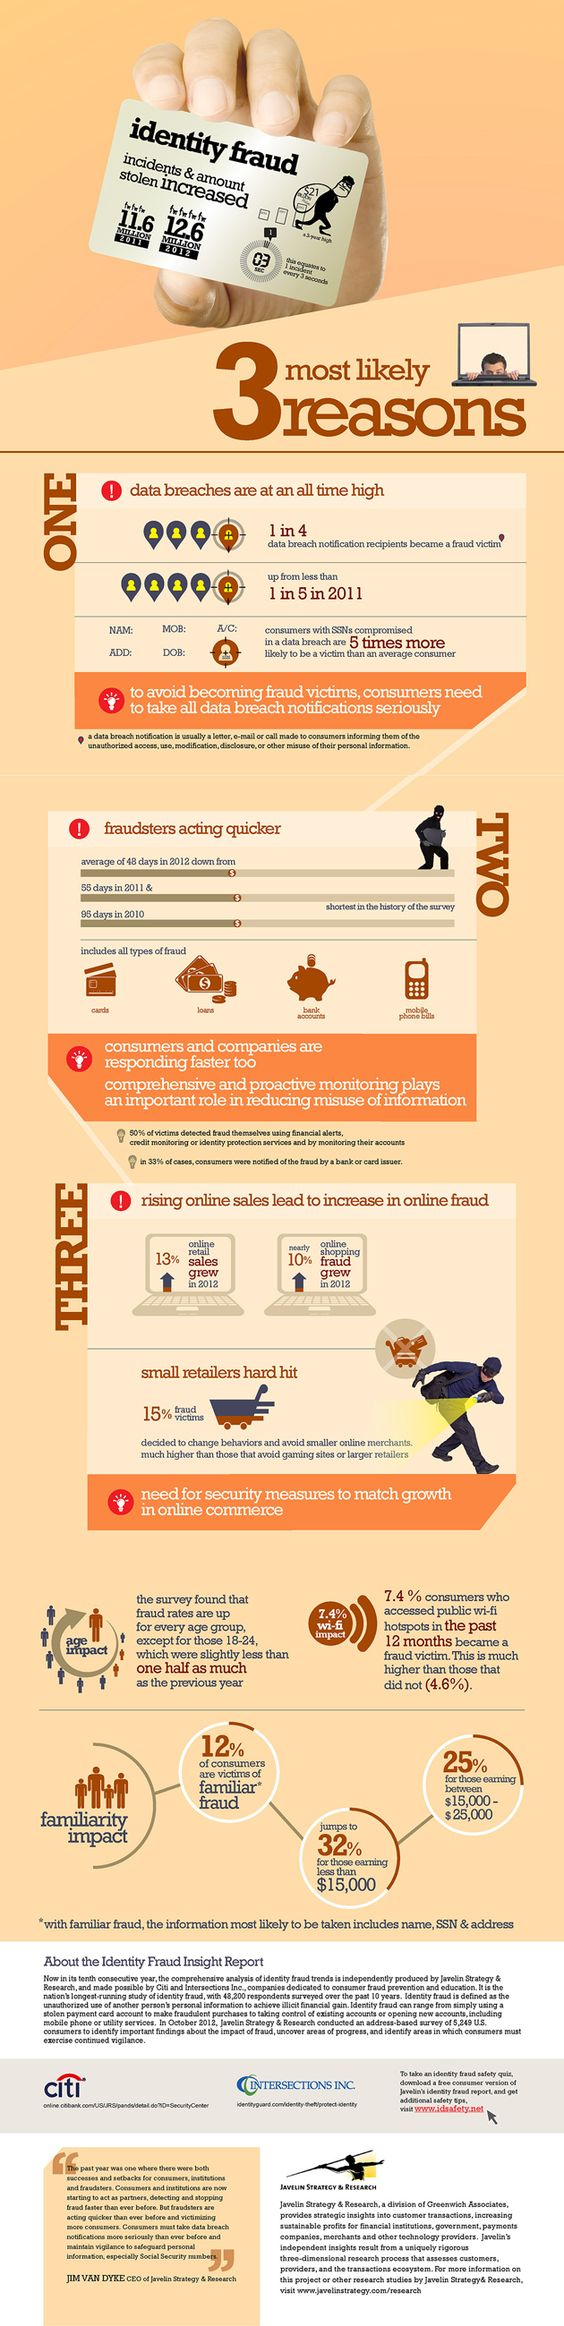 Identity Fraud Hit 1 Victim Every 3 Seconds in 2012